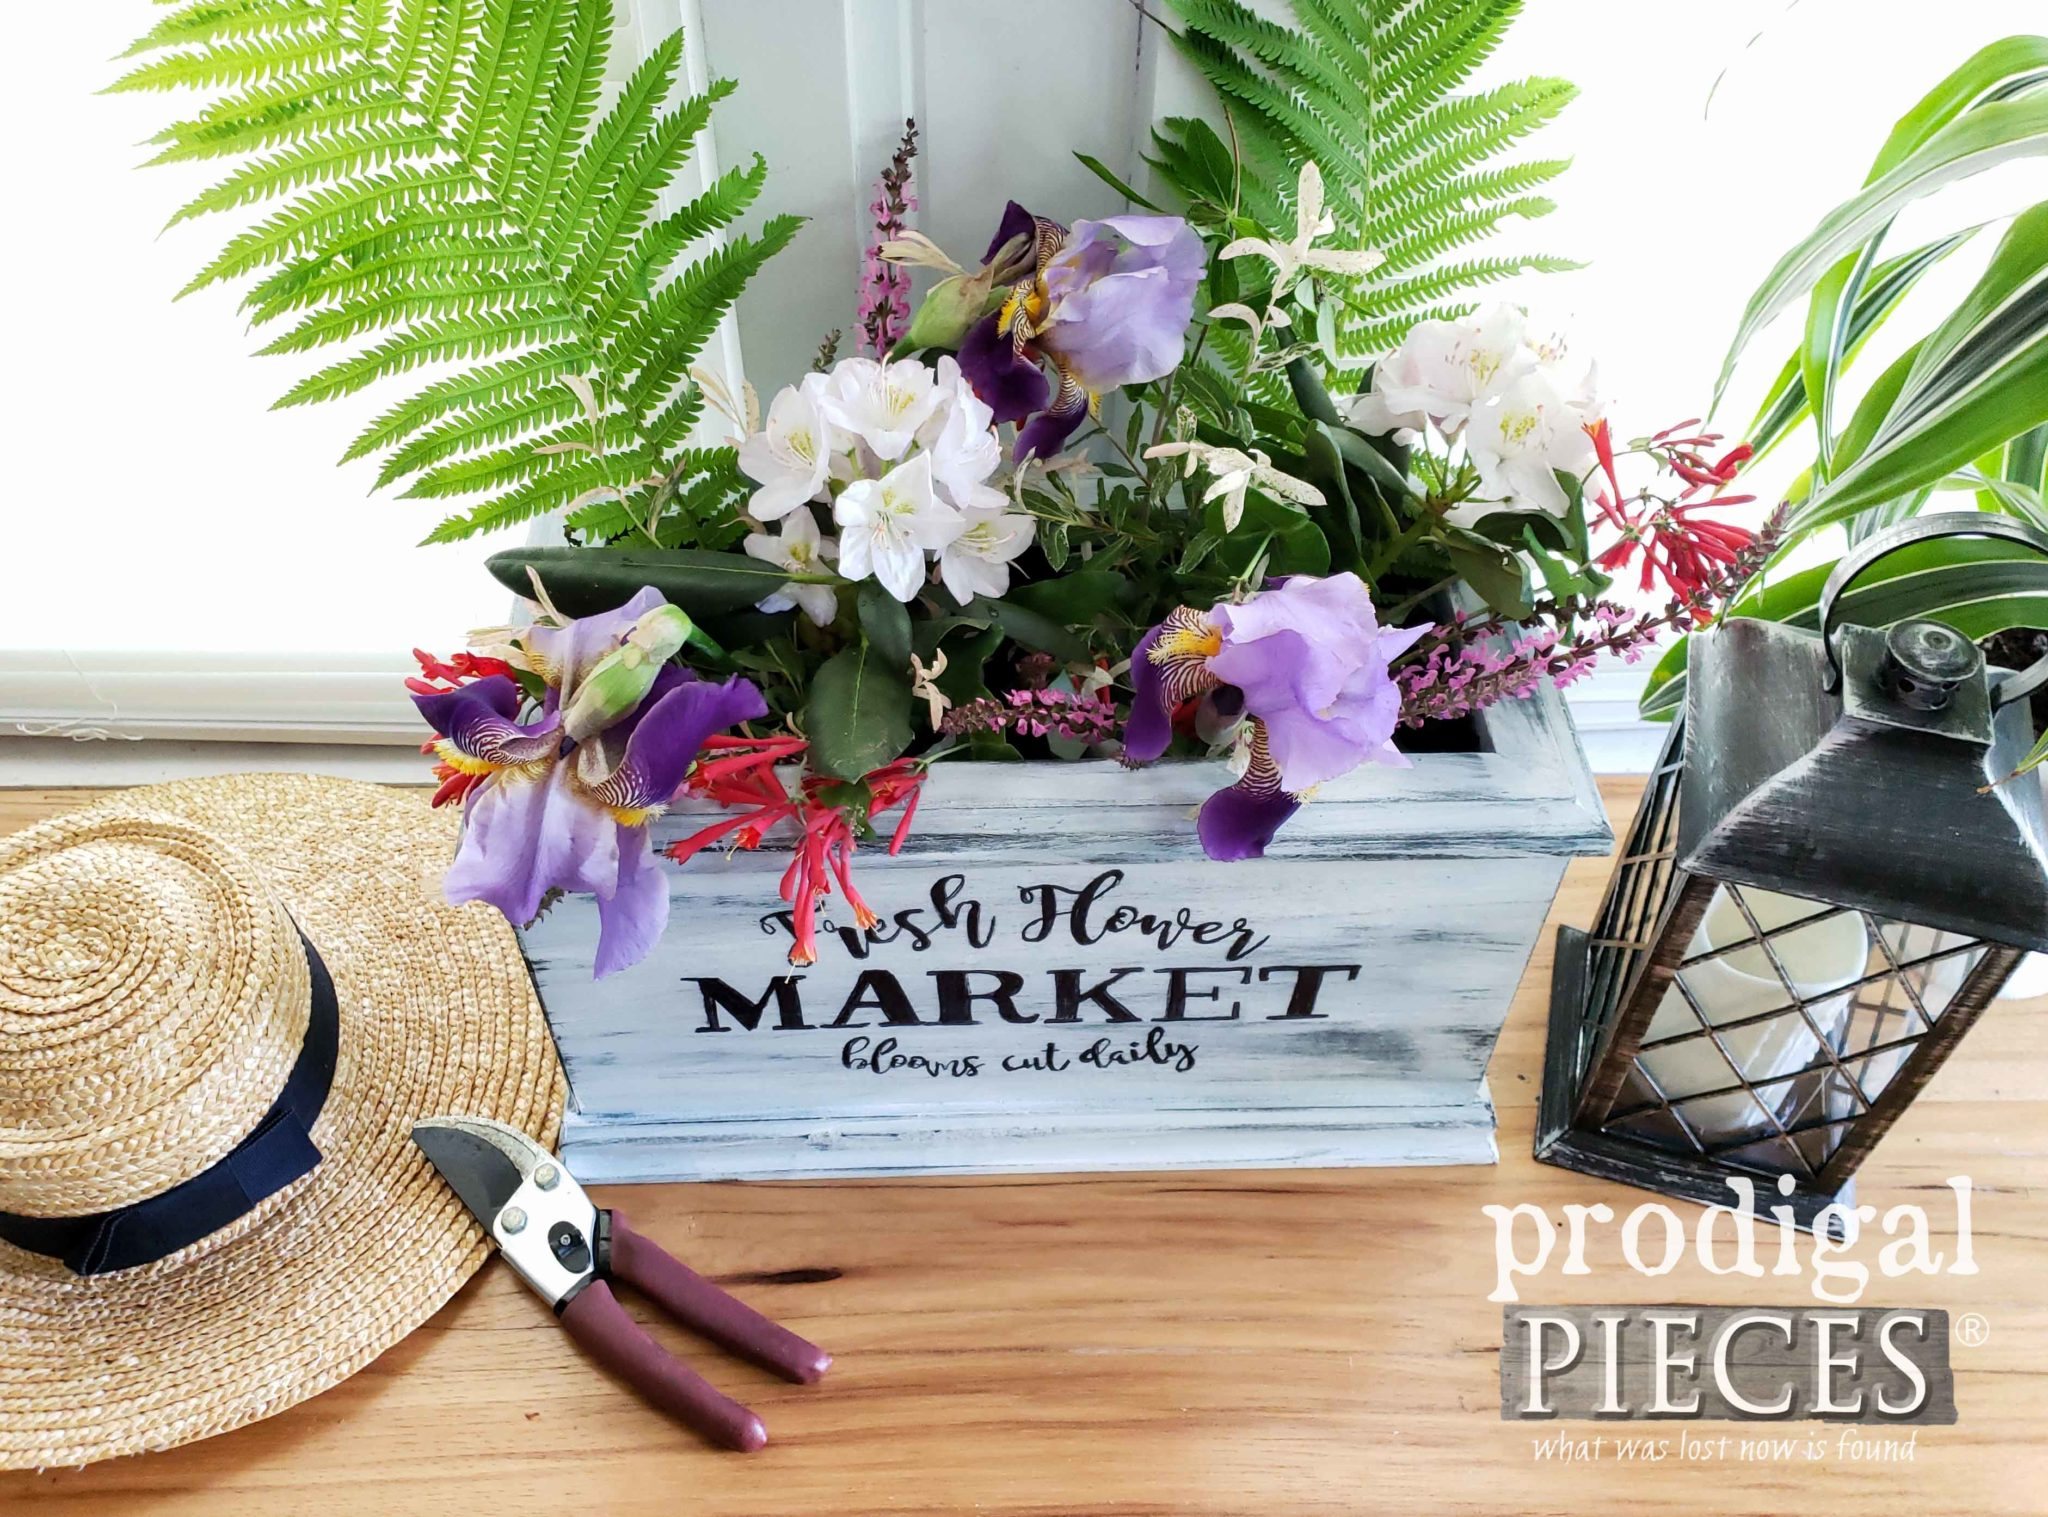 Repurposed Footboard Made into a Flower Planter by Larissa of Prodigal Pieces | prodigalpieces.com #prodigalpieces #diy #handmade #flowers #homedecor #garden